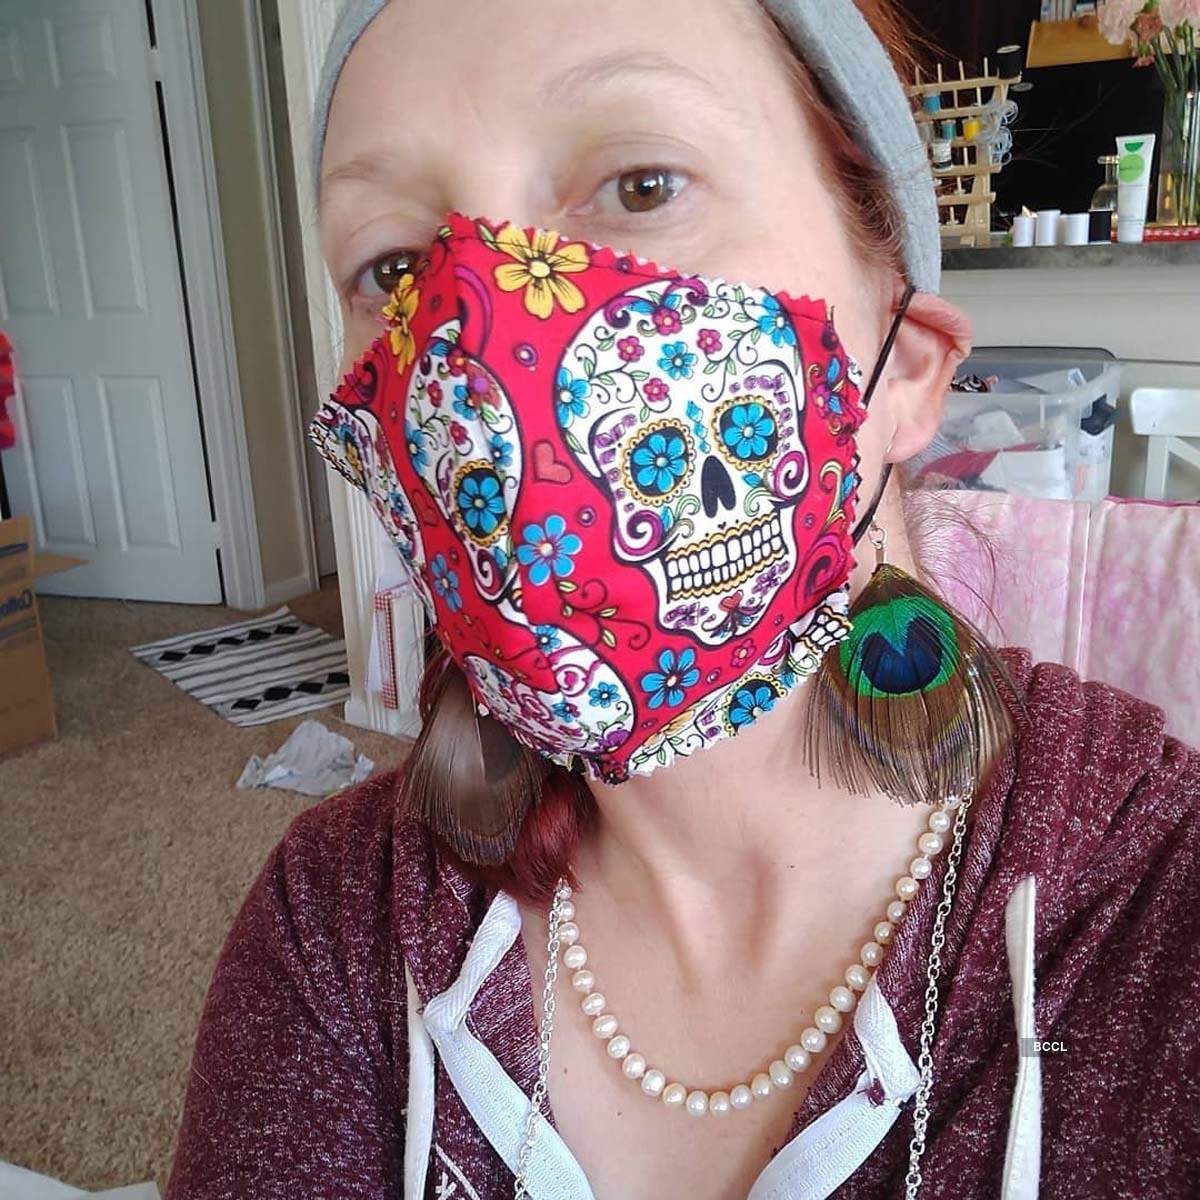 These creative COVID-19 masks will inspire you to make your own homemade face coverings